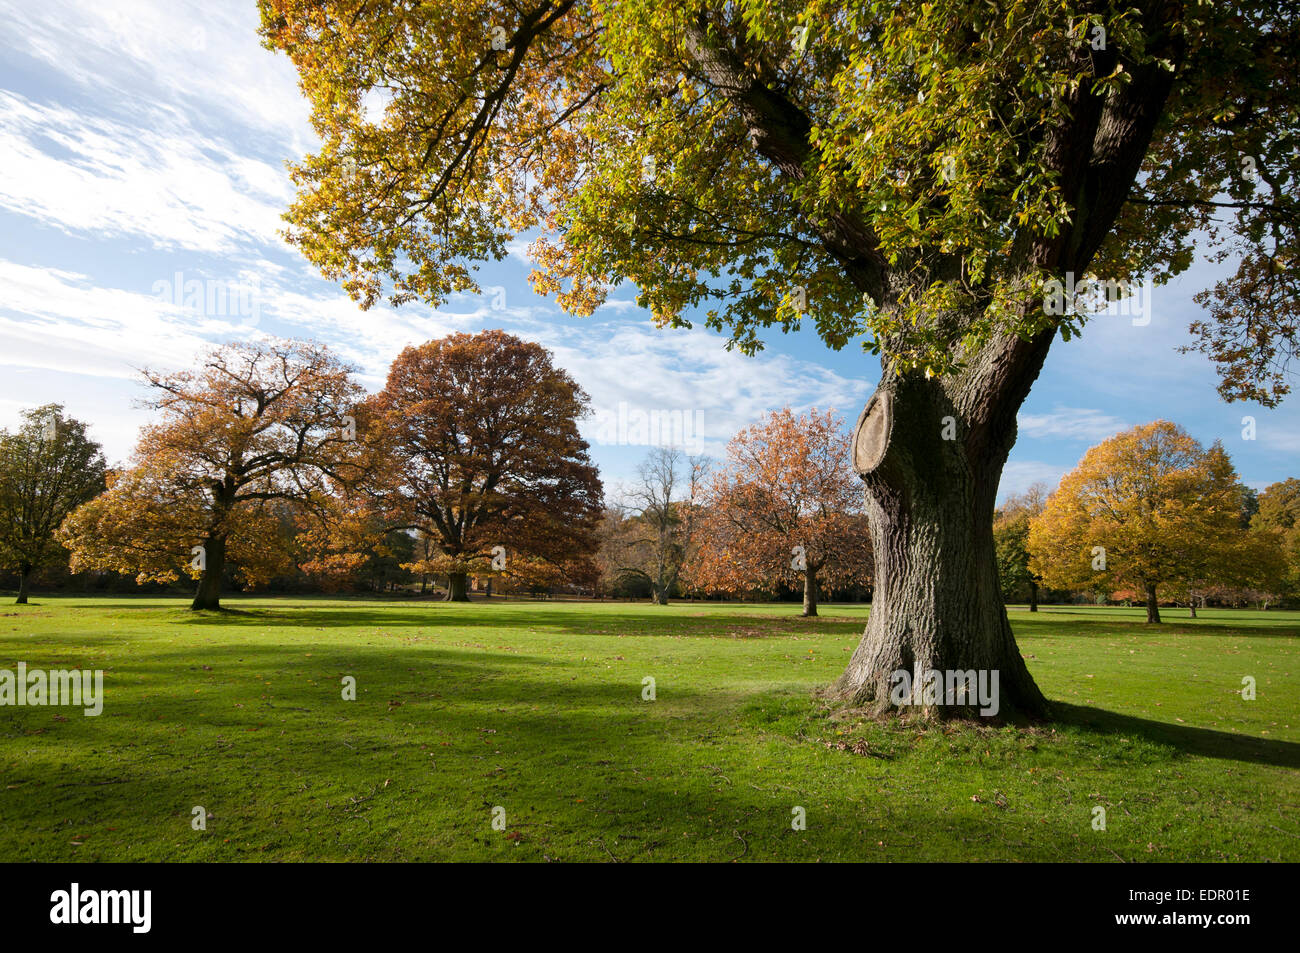 camperdown park autumn angus tayside dundee - Stock Image